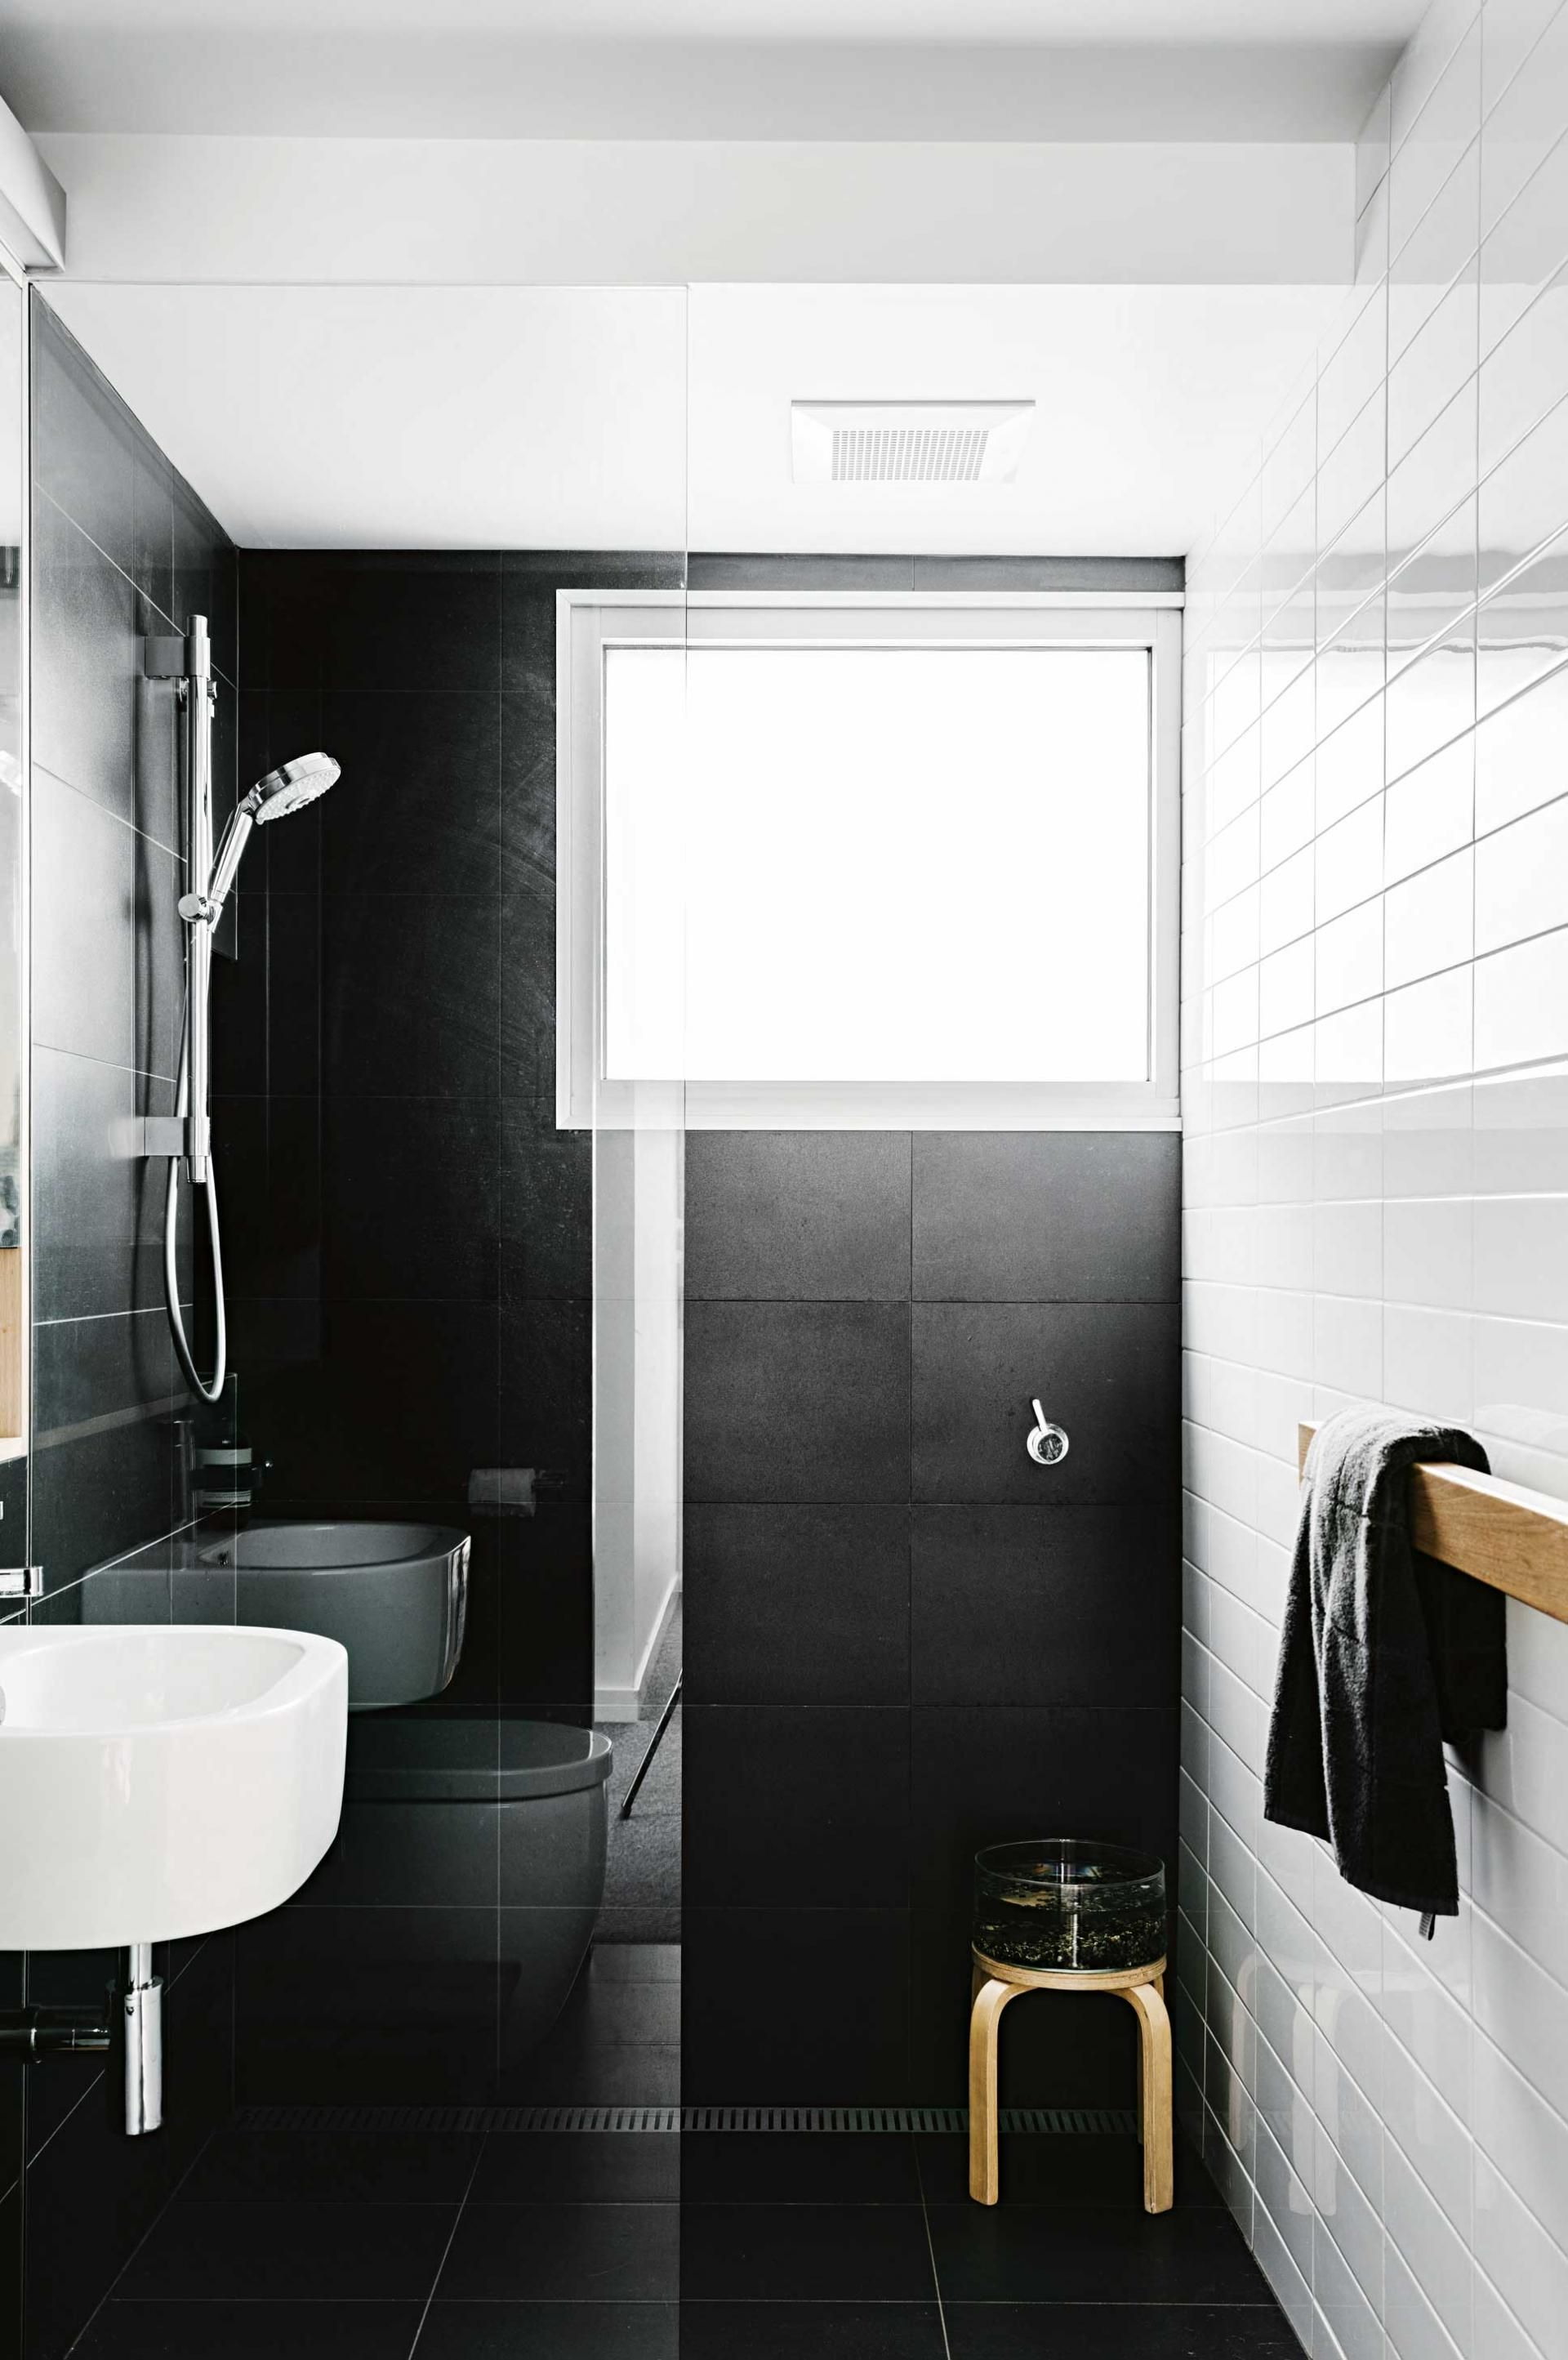 Black and white bathroom ideas pinterest - Top 10 Black And White Bathrooms Styling By Megan Morton Photography By Brooke Holm